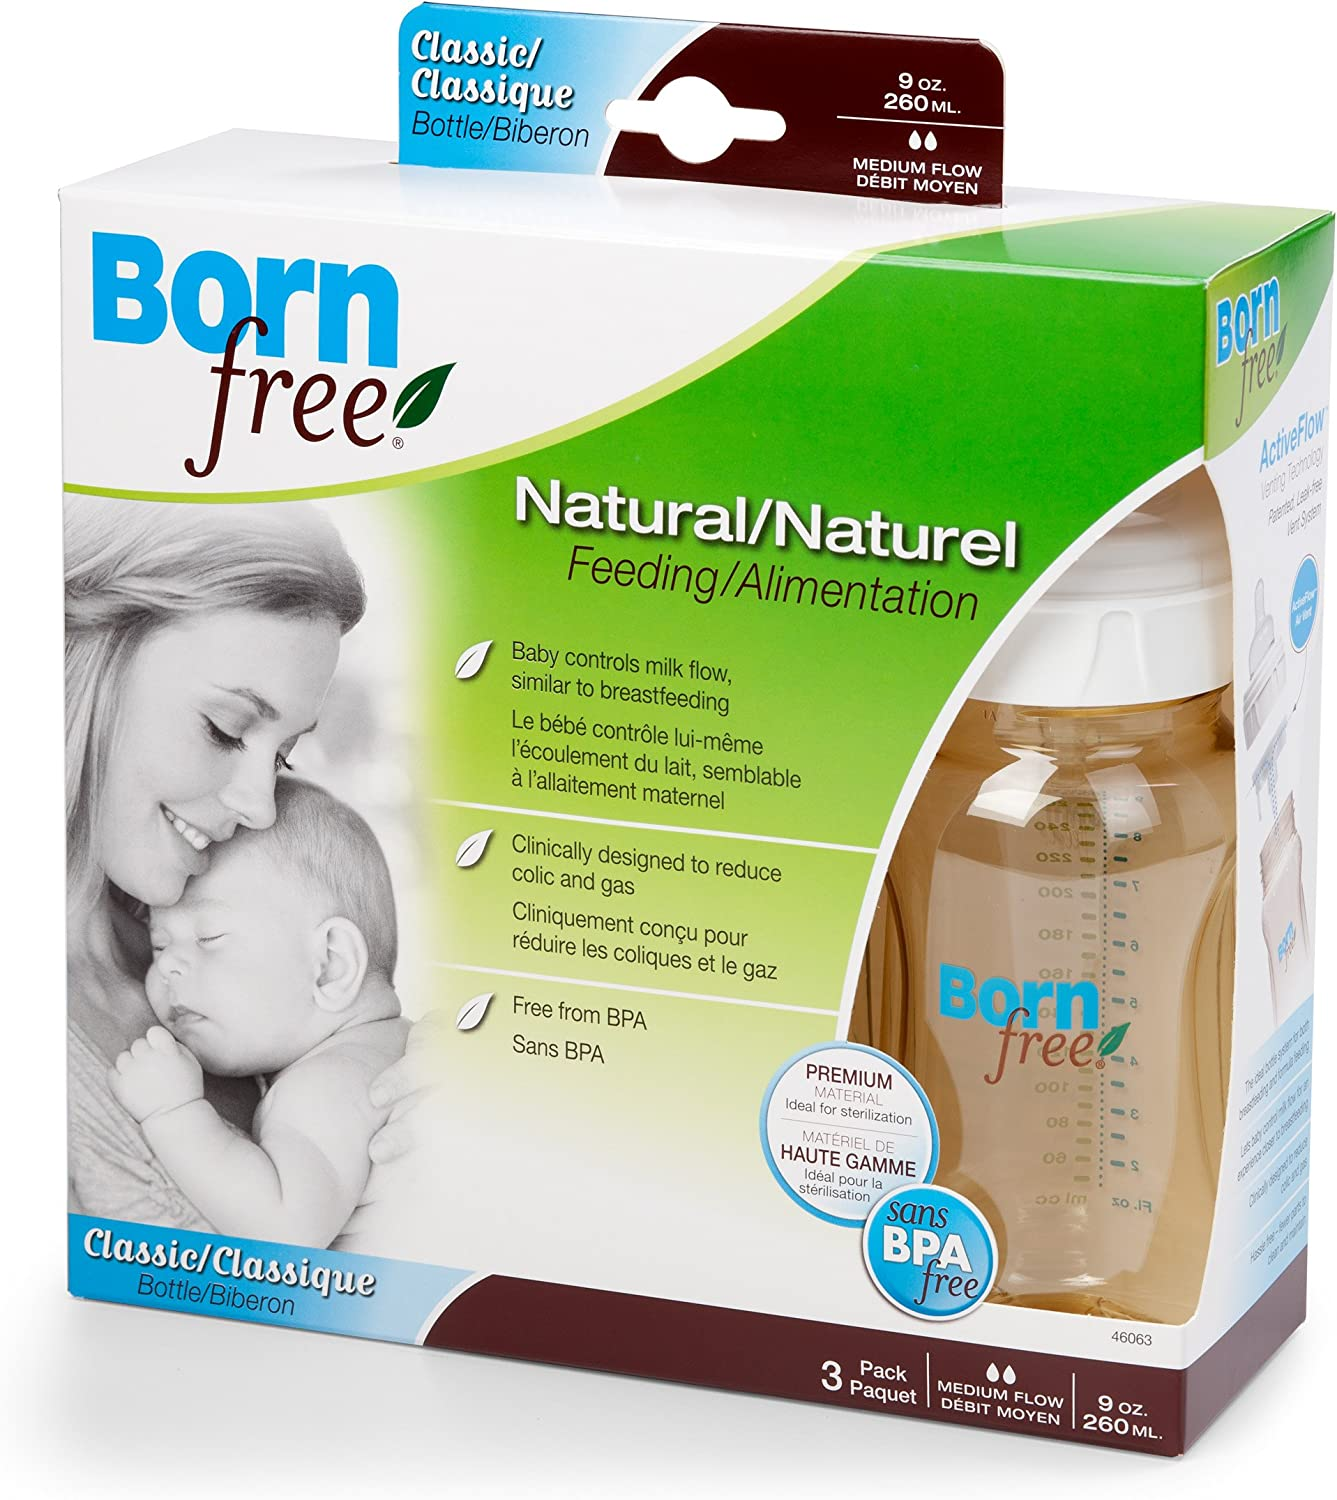 born free classic bottle 9 oz 3 pack